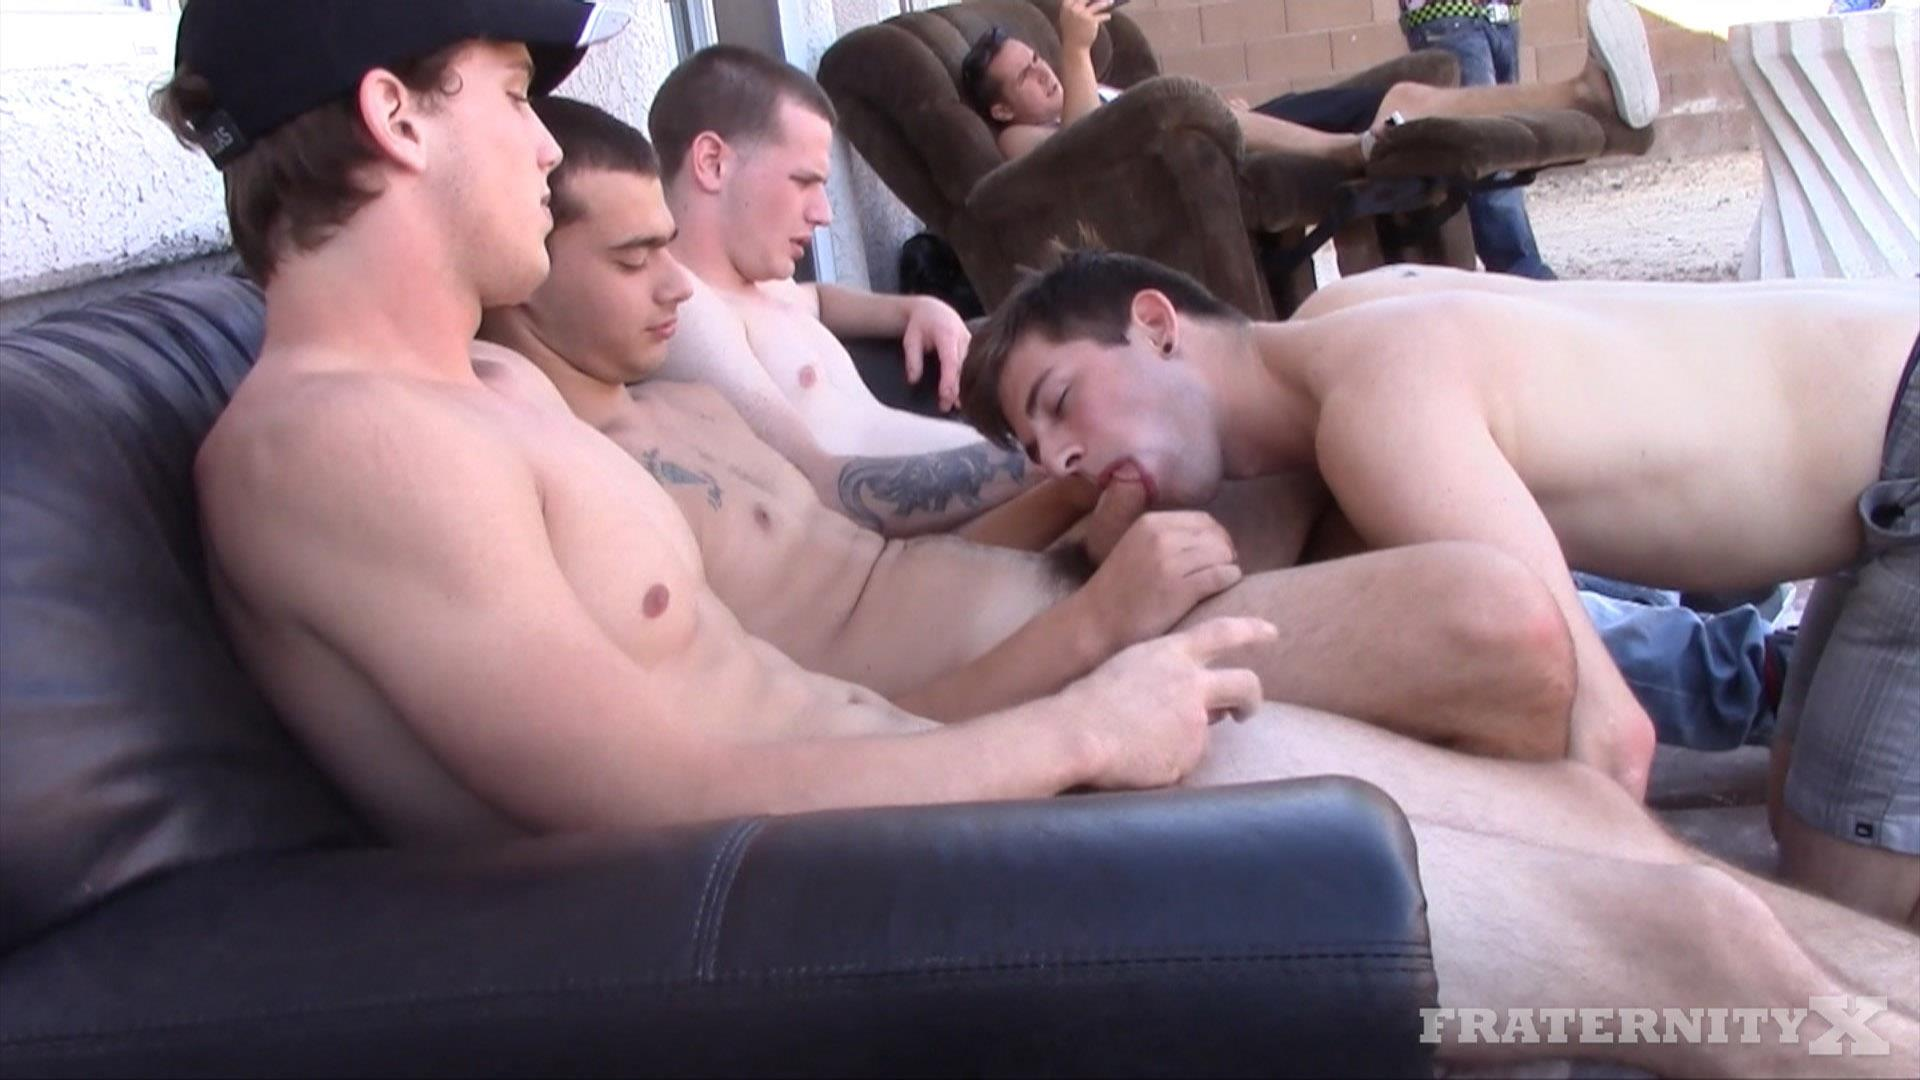 Fraternity X Frenchy Naked Frat Guys Barebacking Outside Big Dicks Amateur Gay Porn 04 Fraternity Boys Fucking Bareback Outside On The Frat Patio